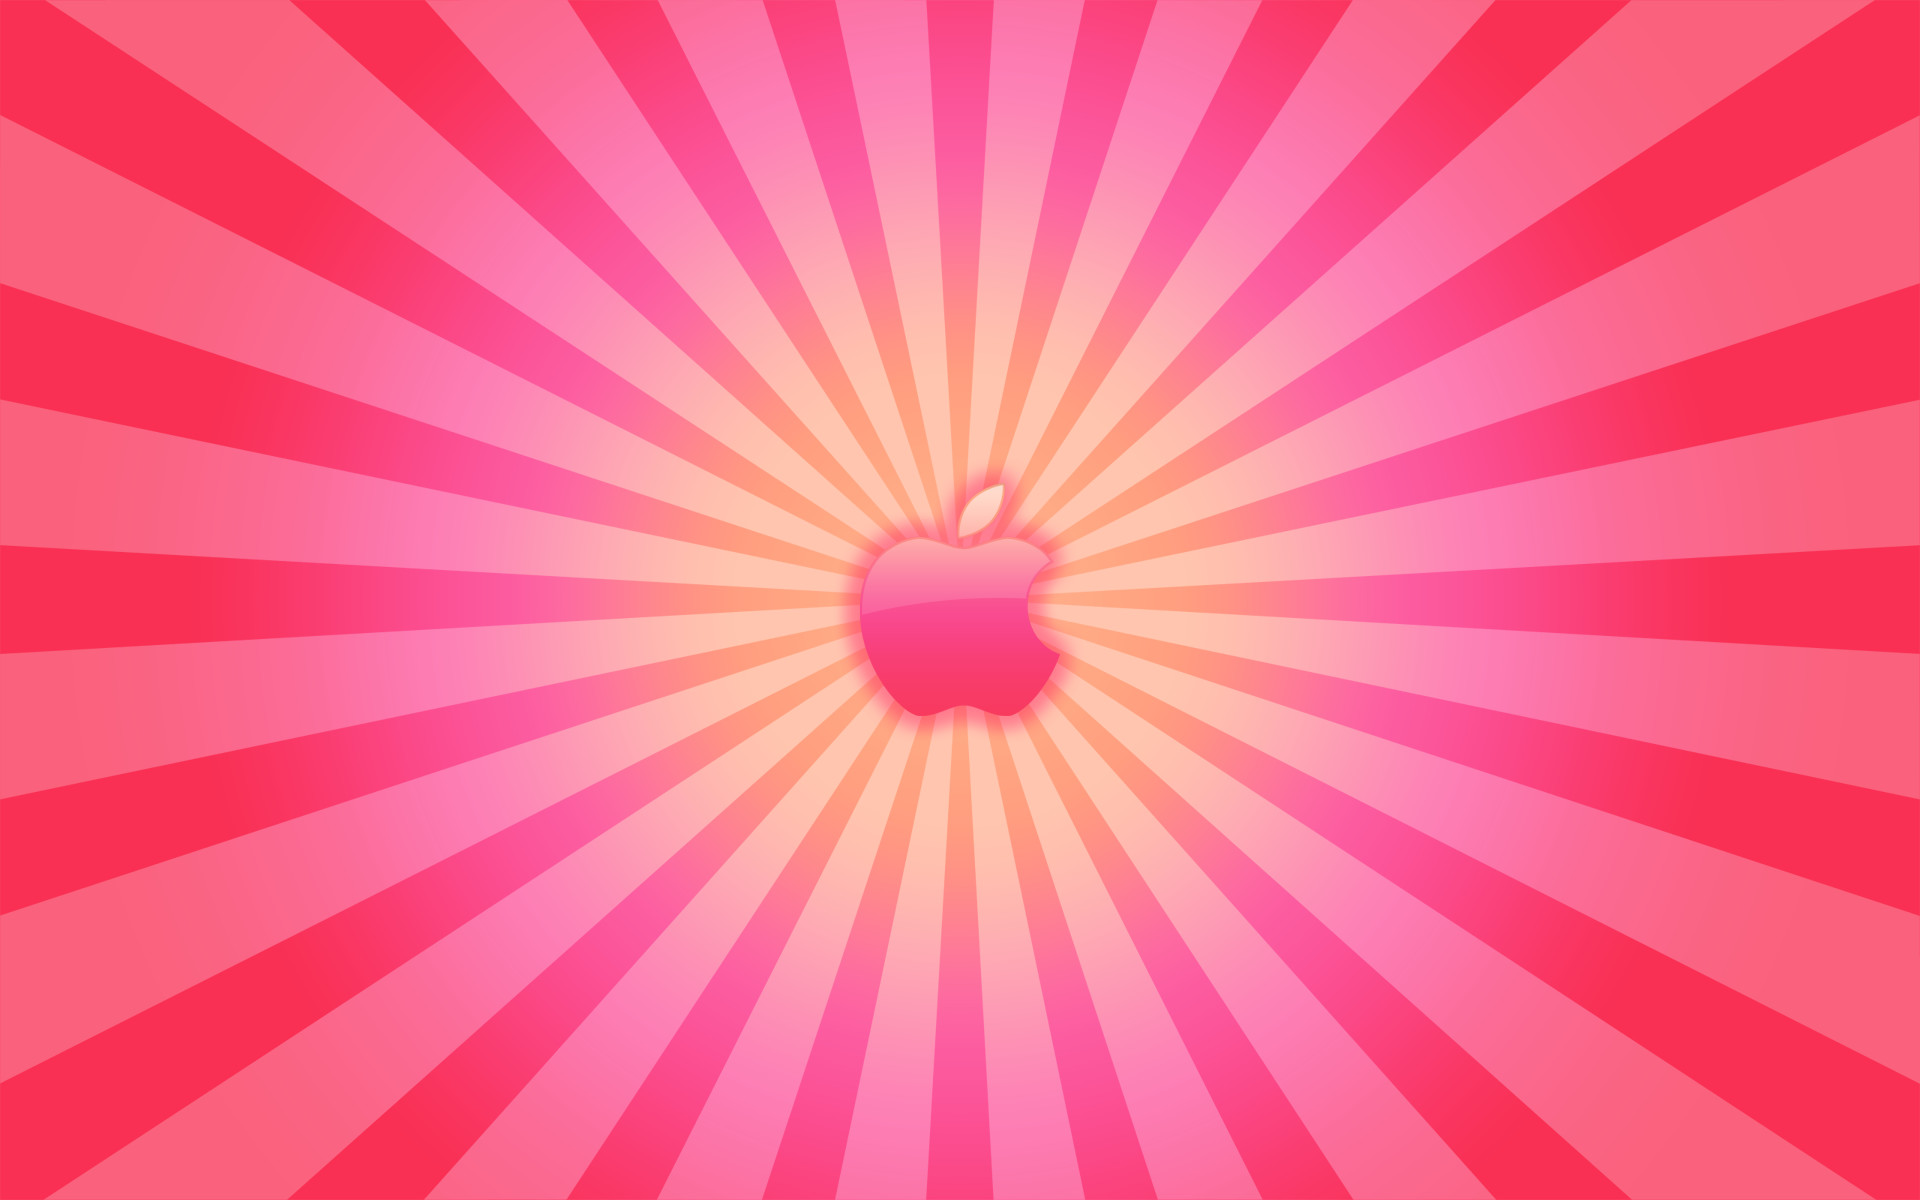 1920x1200 Apple Pink Cool Wallpapers 3265 - Amazing Wallpaperz